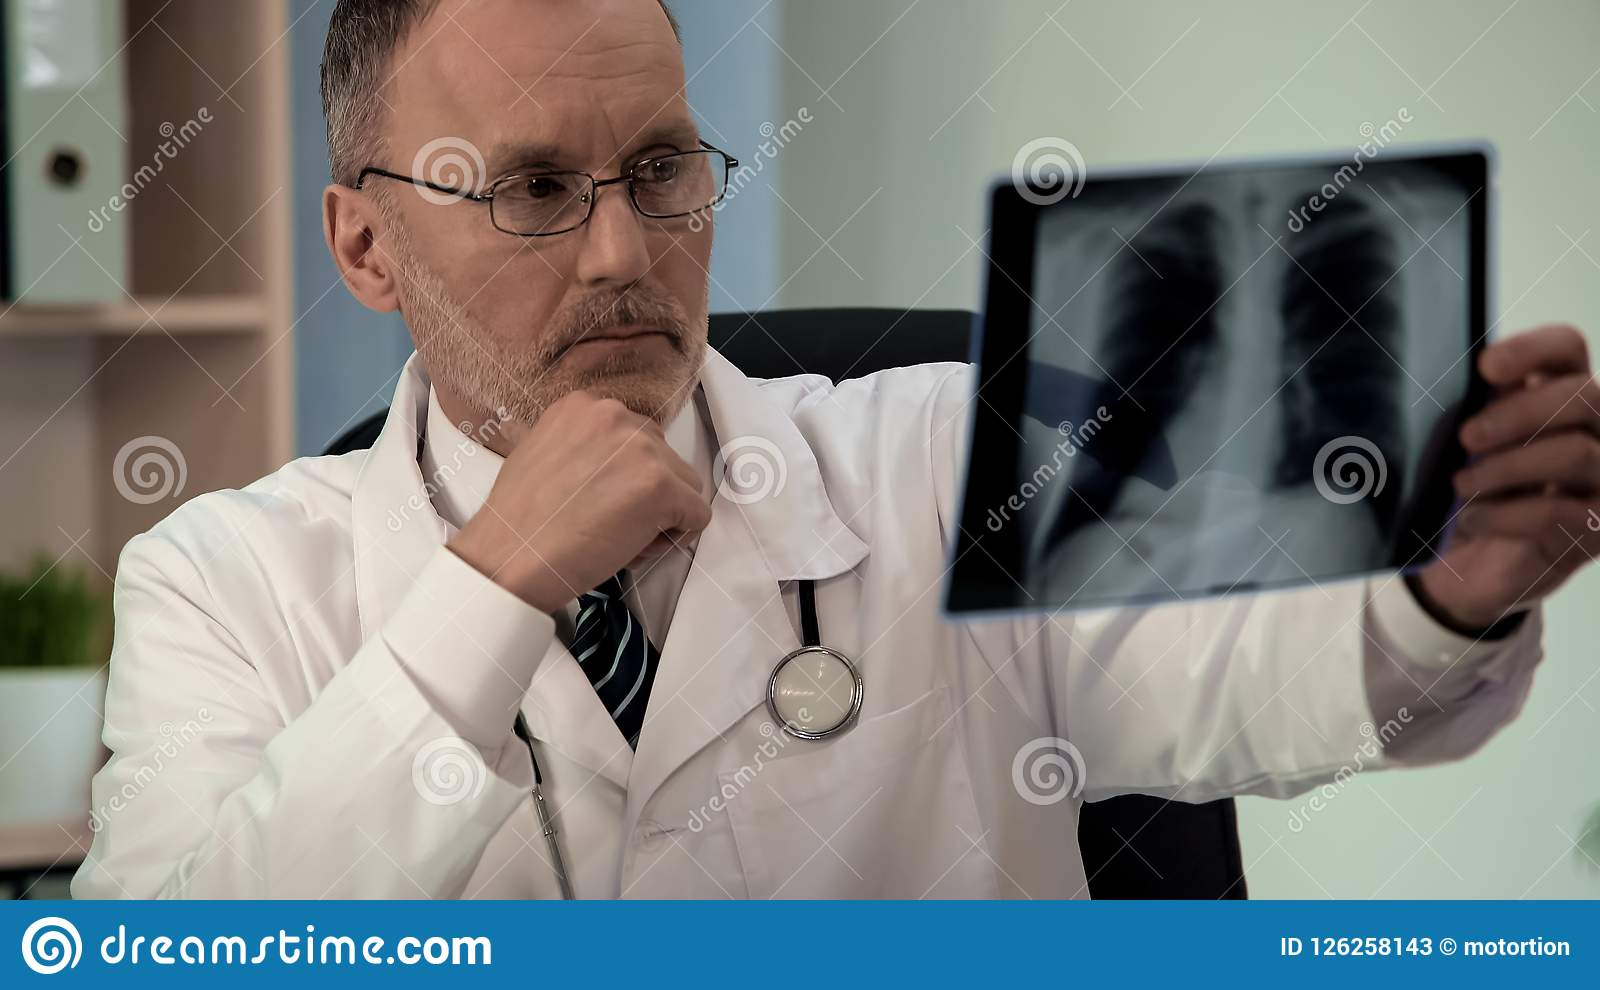 Male pulmonologist scrutinizing chest x-ray, looking for pathology, diagnostics